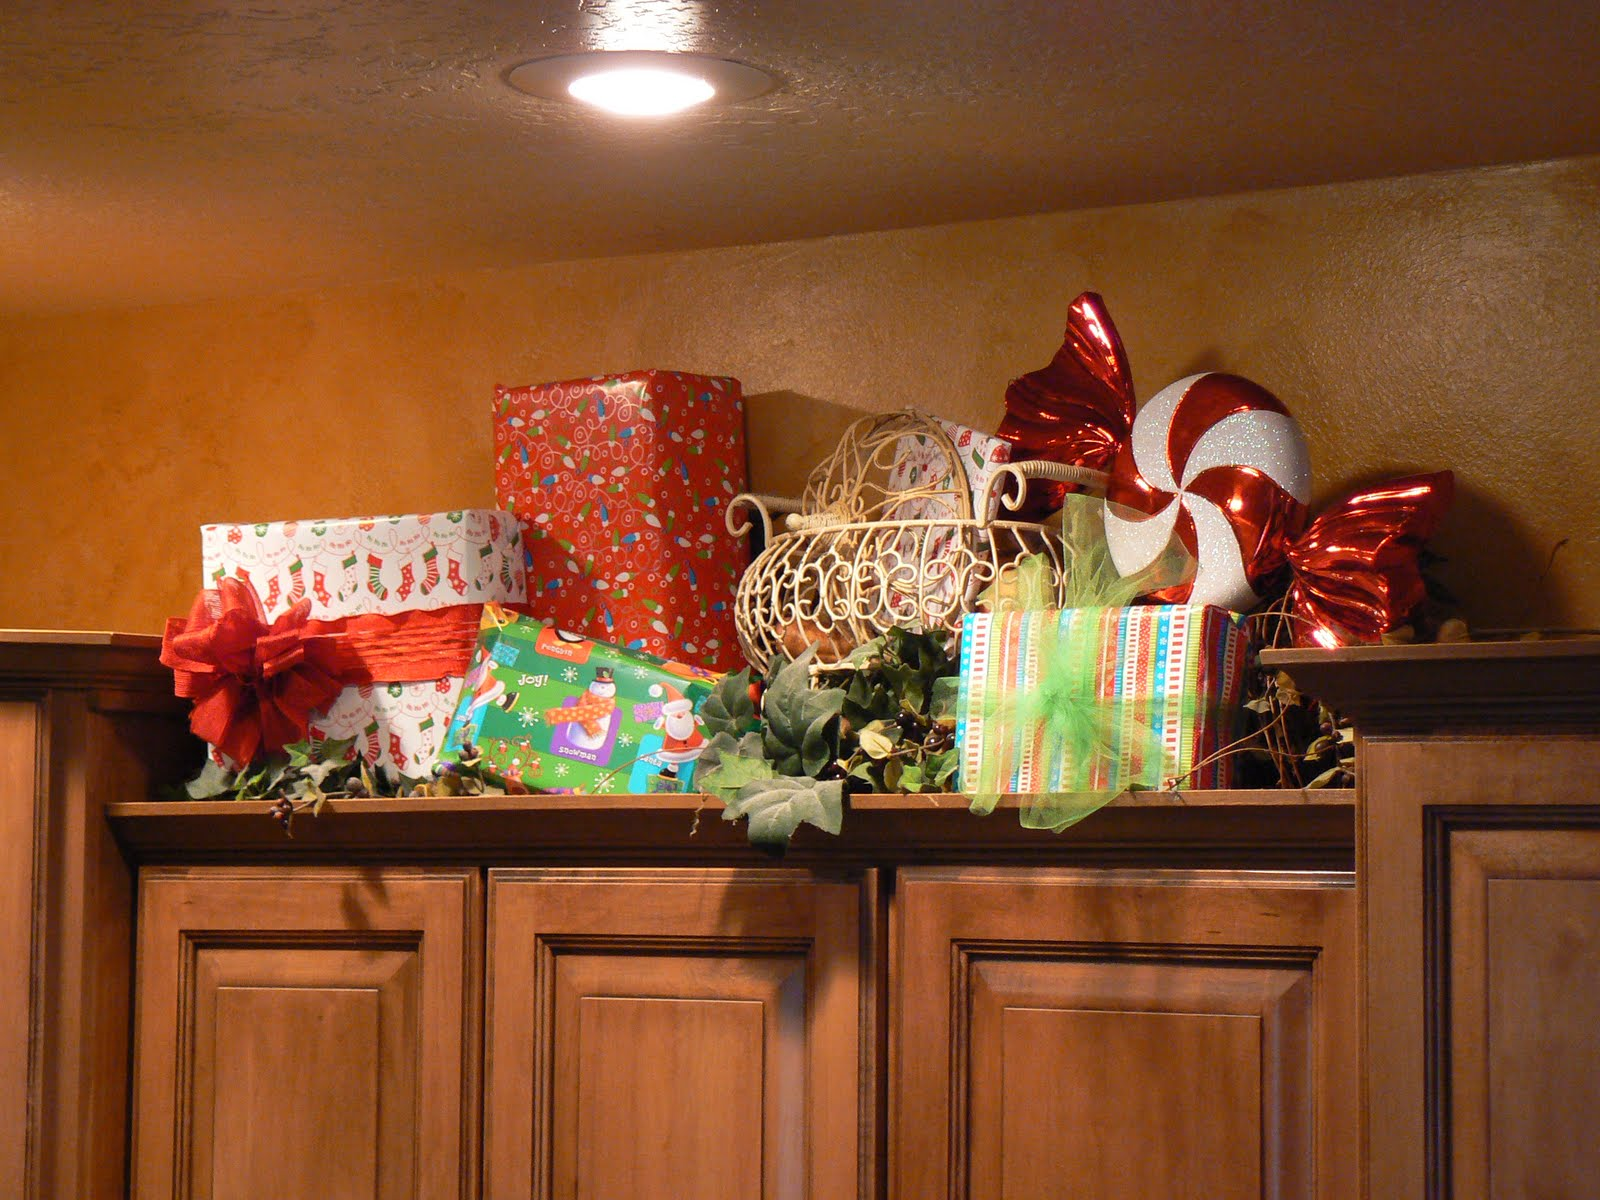 The Creative Homemaker: Christmas Present Solution